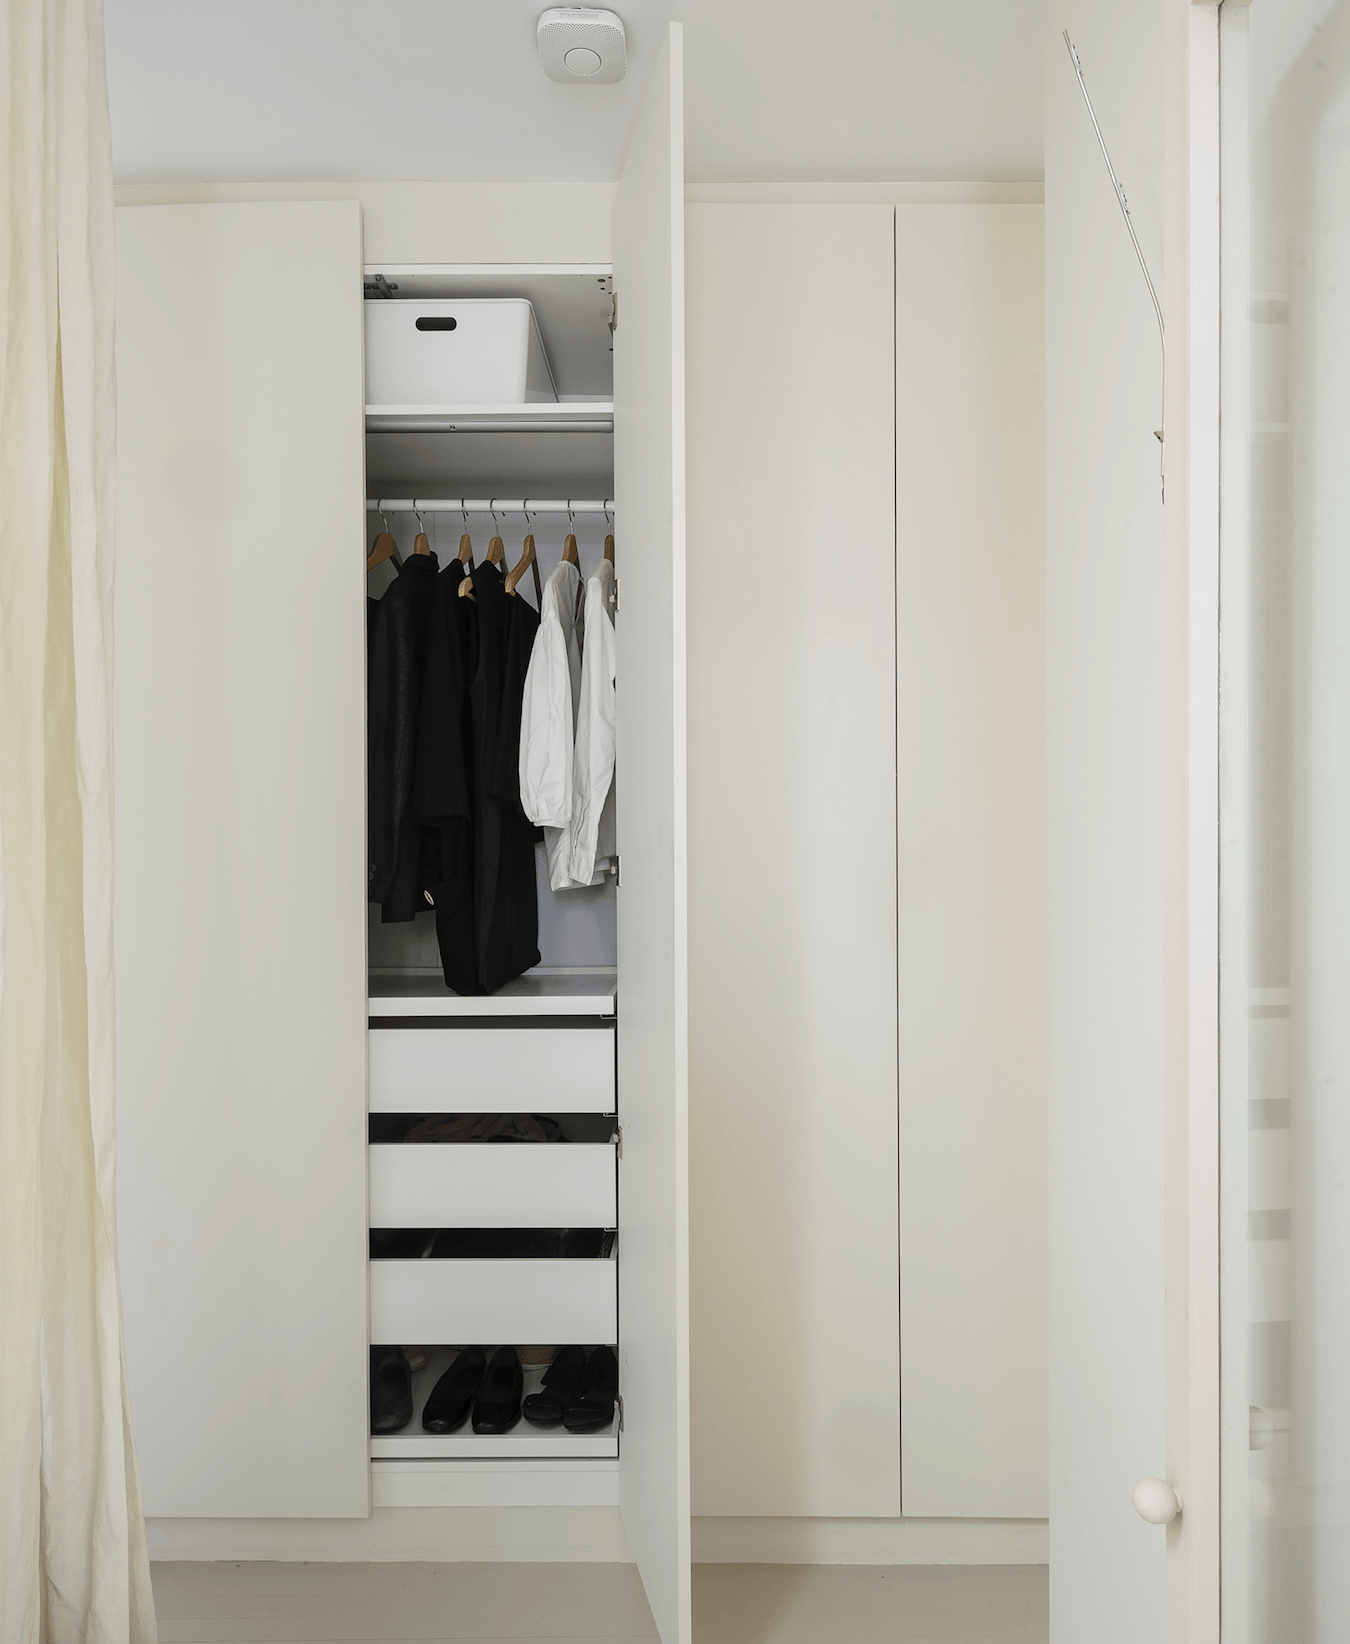 The IkeaPAX Wardrobe Systemserves dual function; it acts as both closet and partition between the hall and the master bedroom. The doors are painted inFarrow & Ball&#8